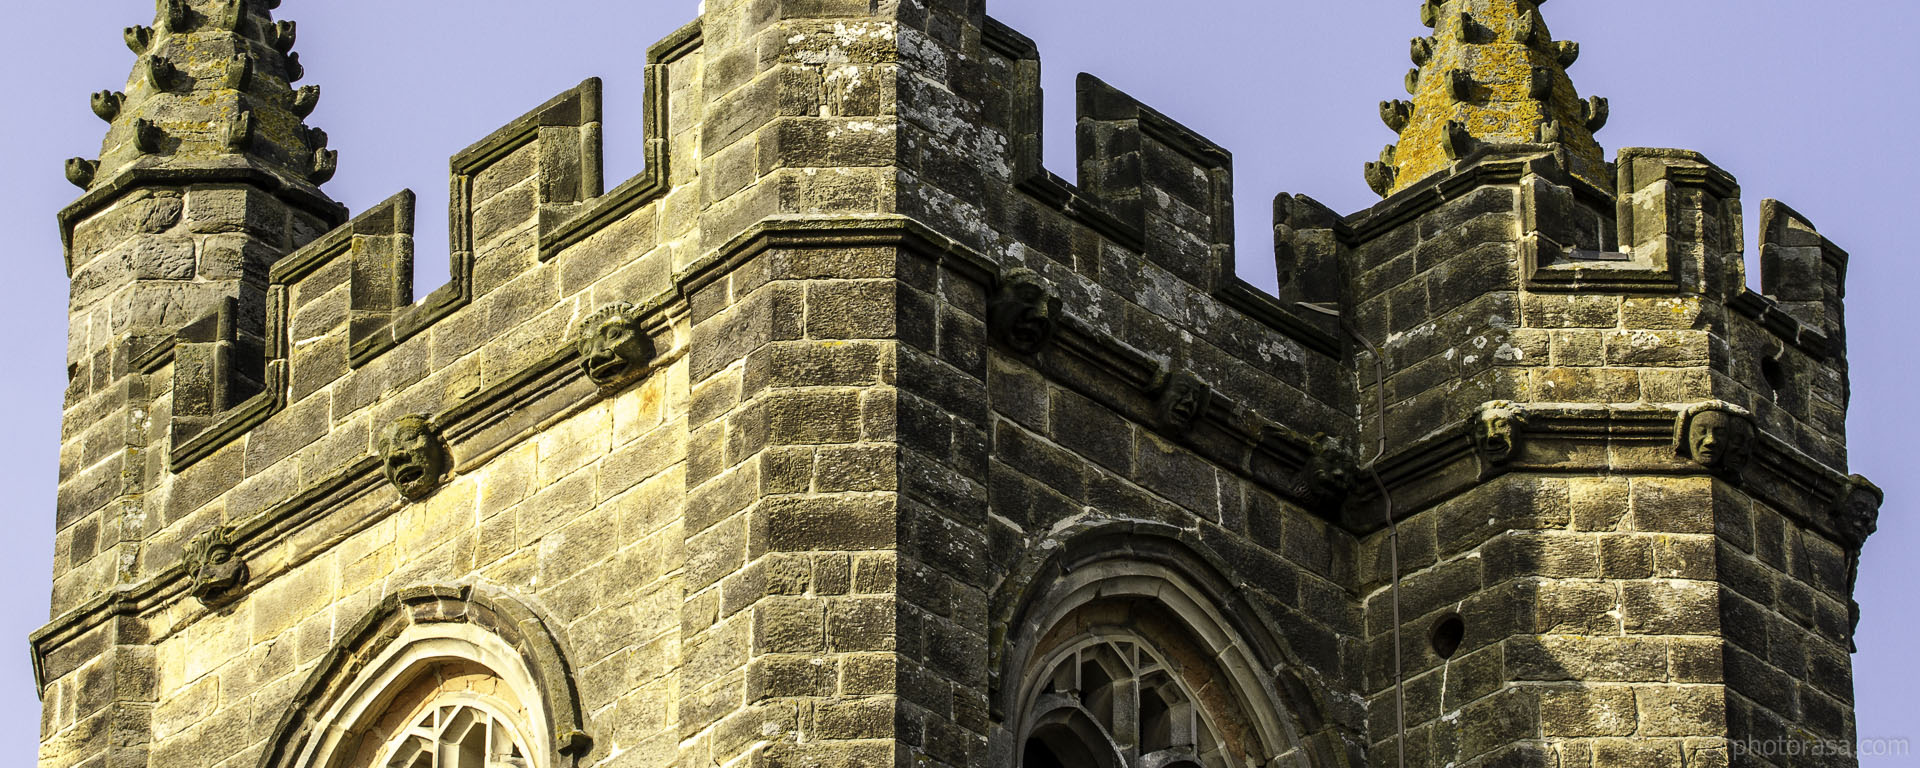 https://photorasa.com/st-marys-church-in-chiddingstone/faces-lining-church-of-st-mary-tower-in-chiddingstone/